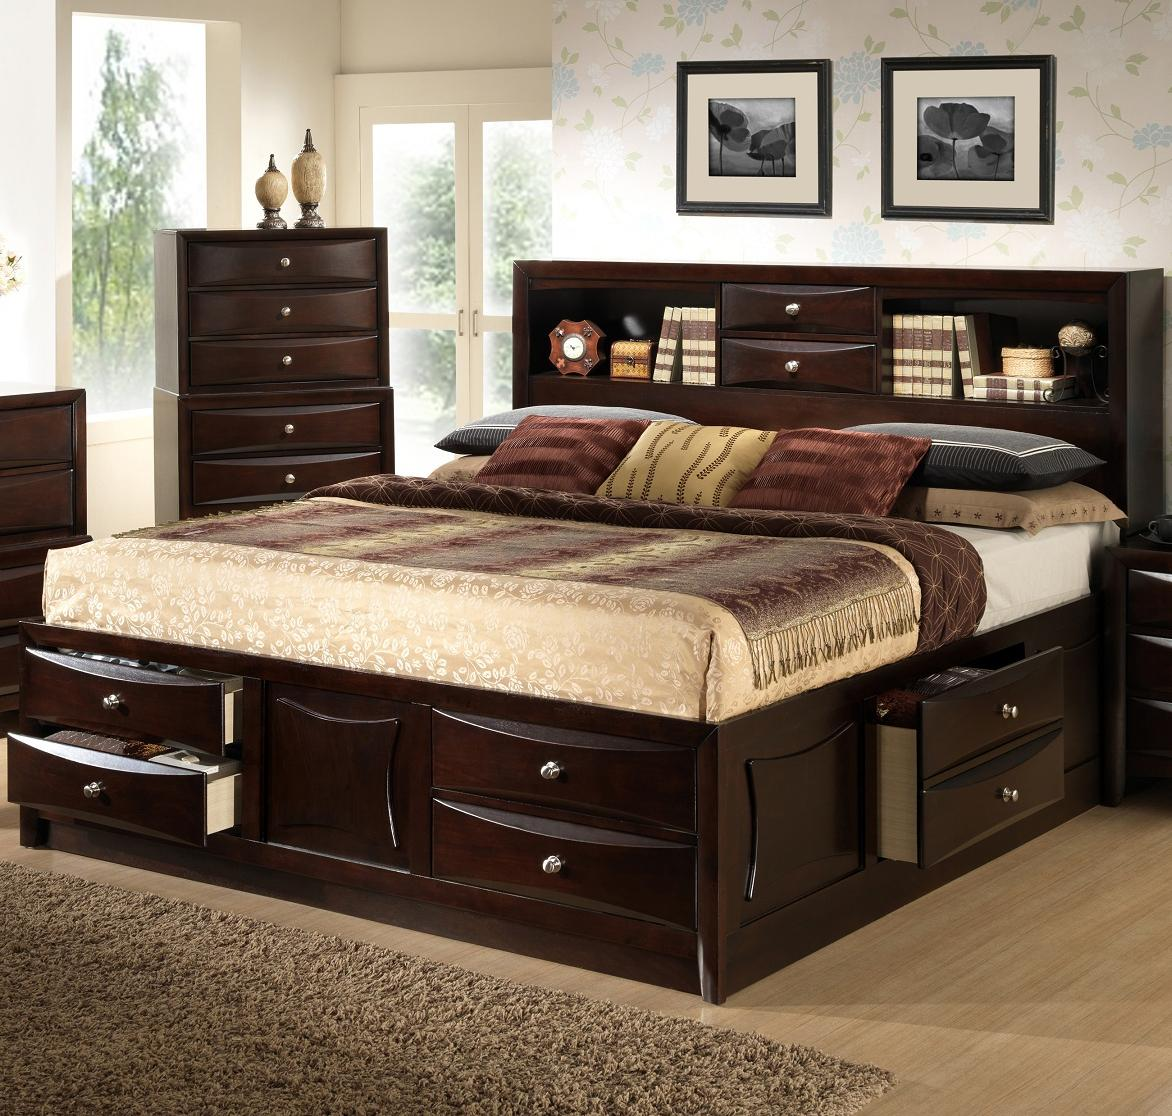 Bookcase Bed Todd Queen Storage Bed W Bookcase Headboard By Lifestyle At Royal Furniture